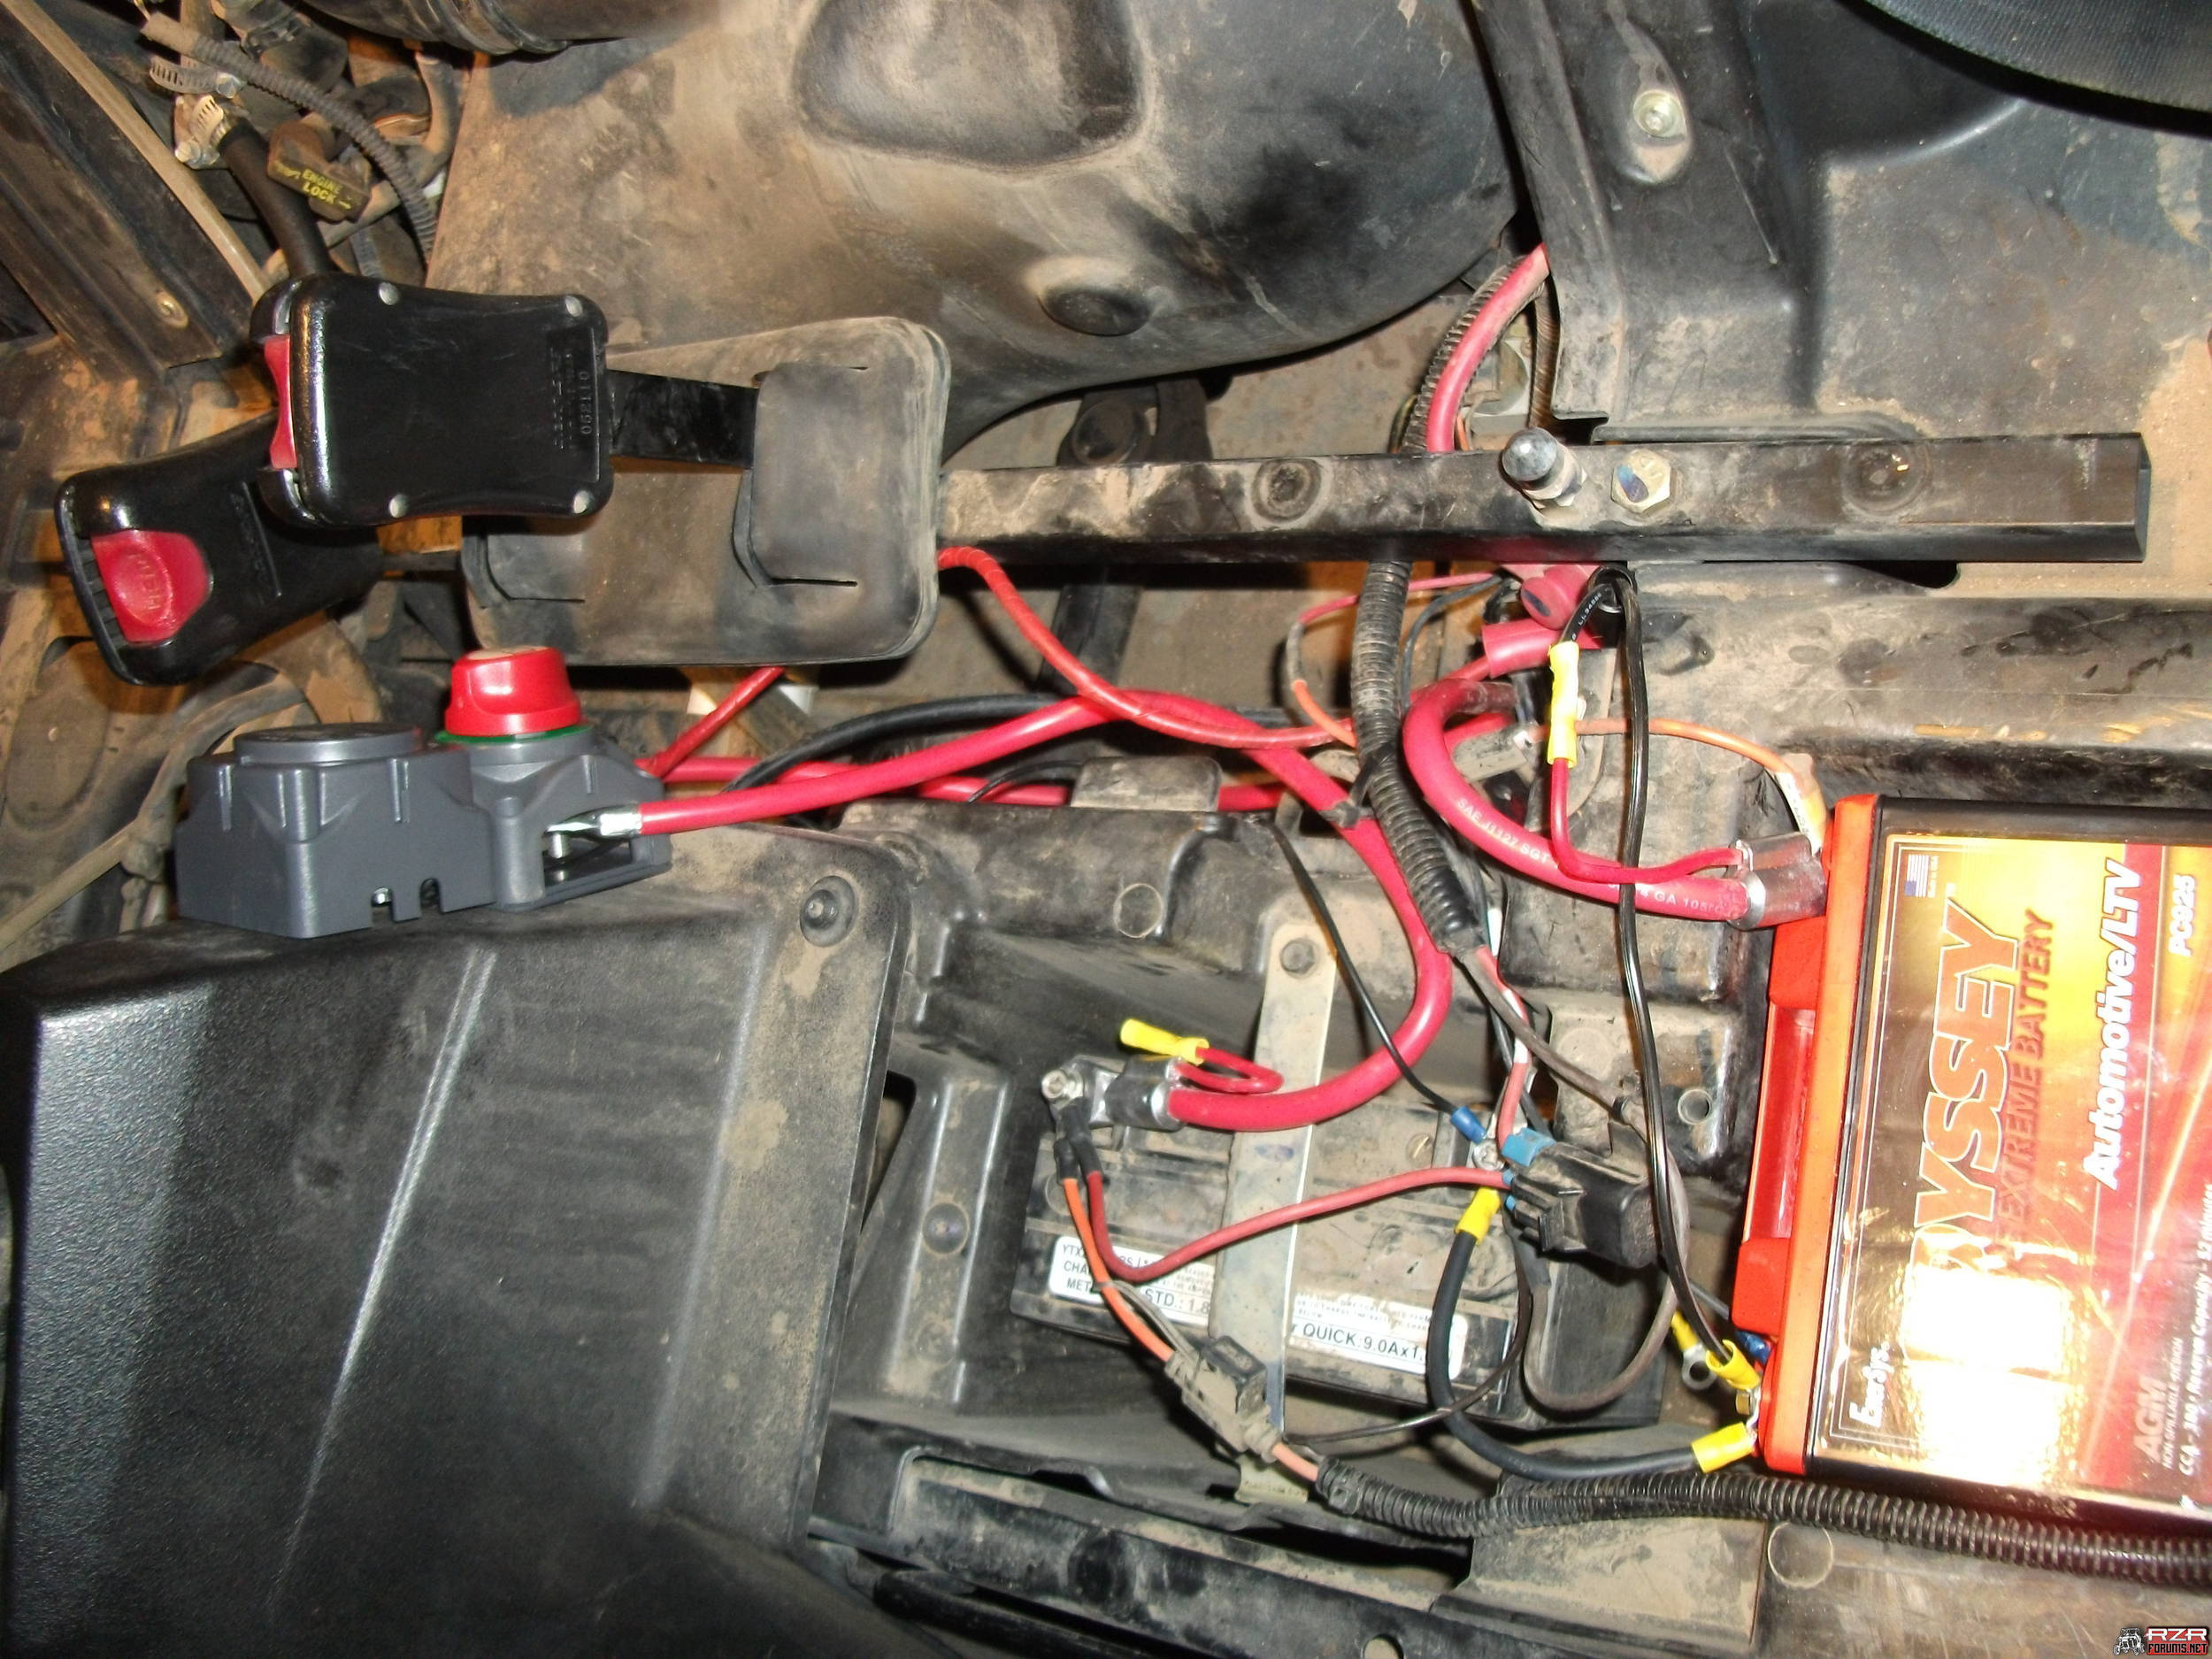 Polaris Ranger 500 Fuse Box | Wiring Library - Mercury Outboard Ignition Switch Wiring Diagram